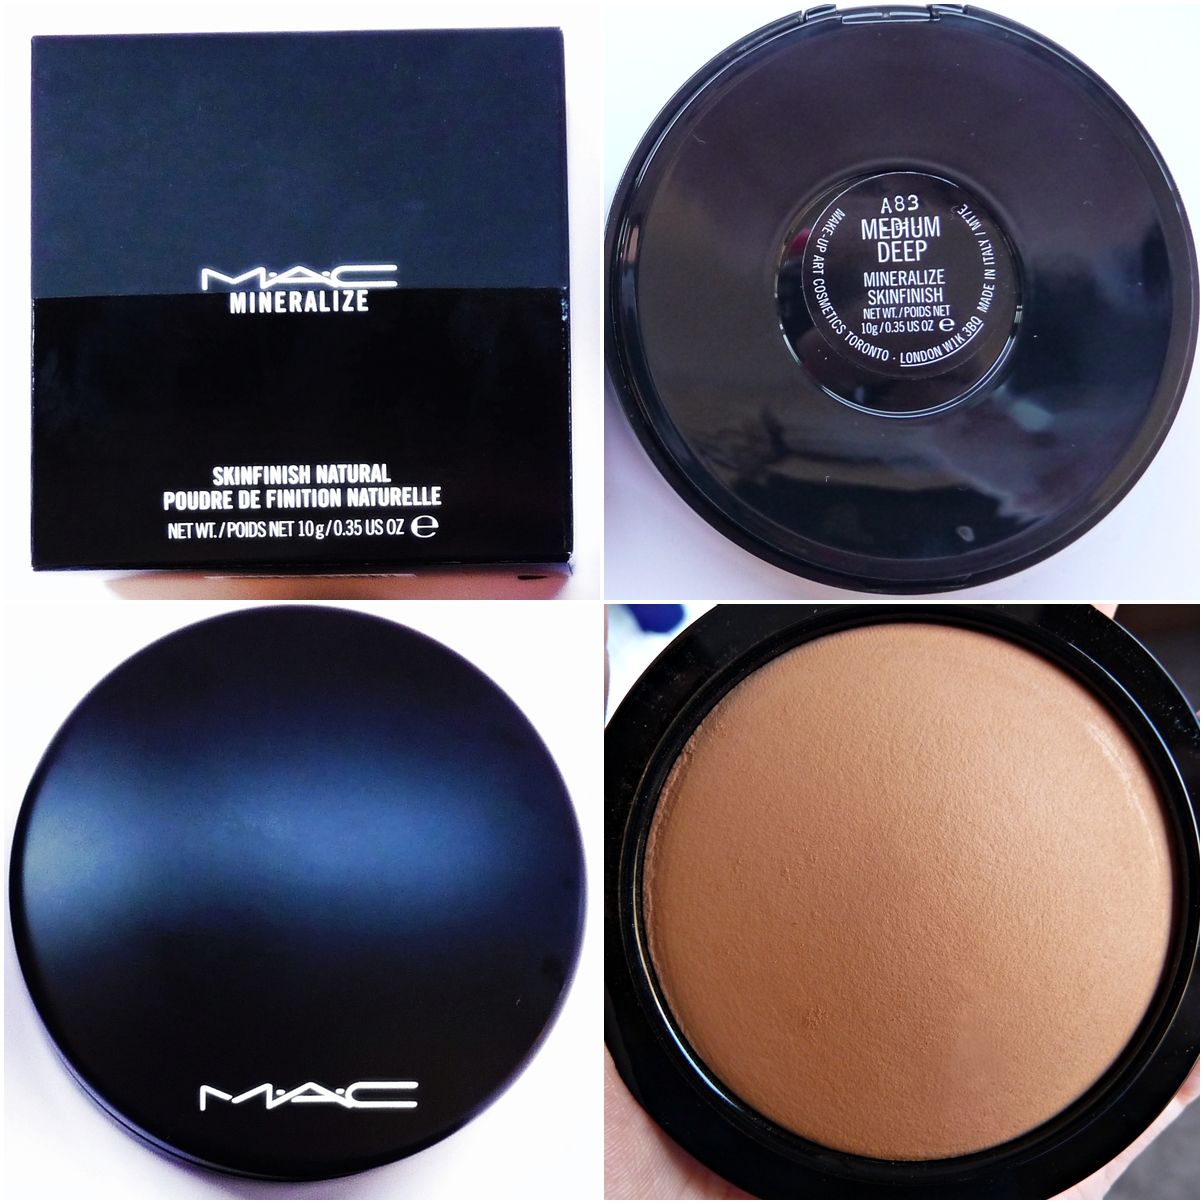 Polvos minerales de MAC (Mineralize Skinfinish Natural, tono Medium Deep)